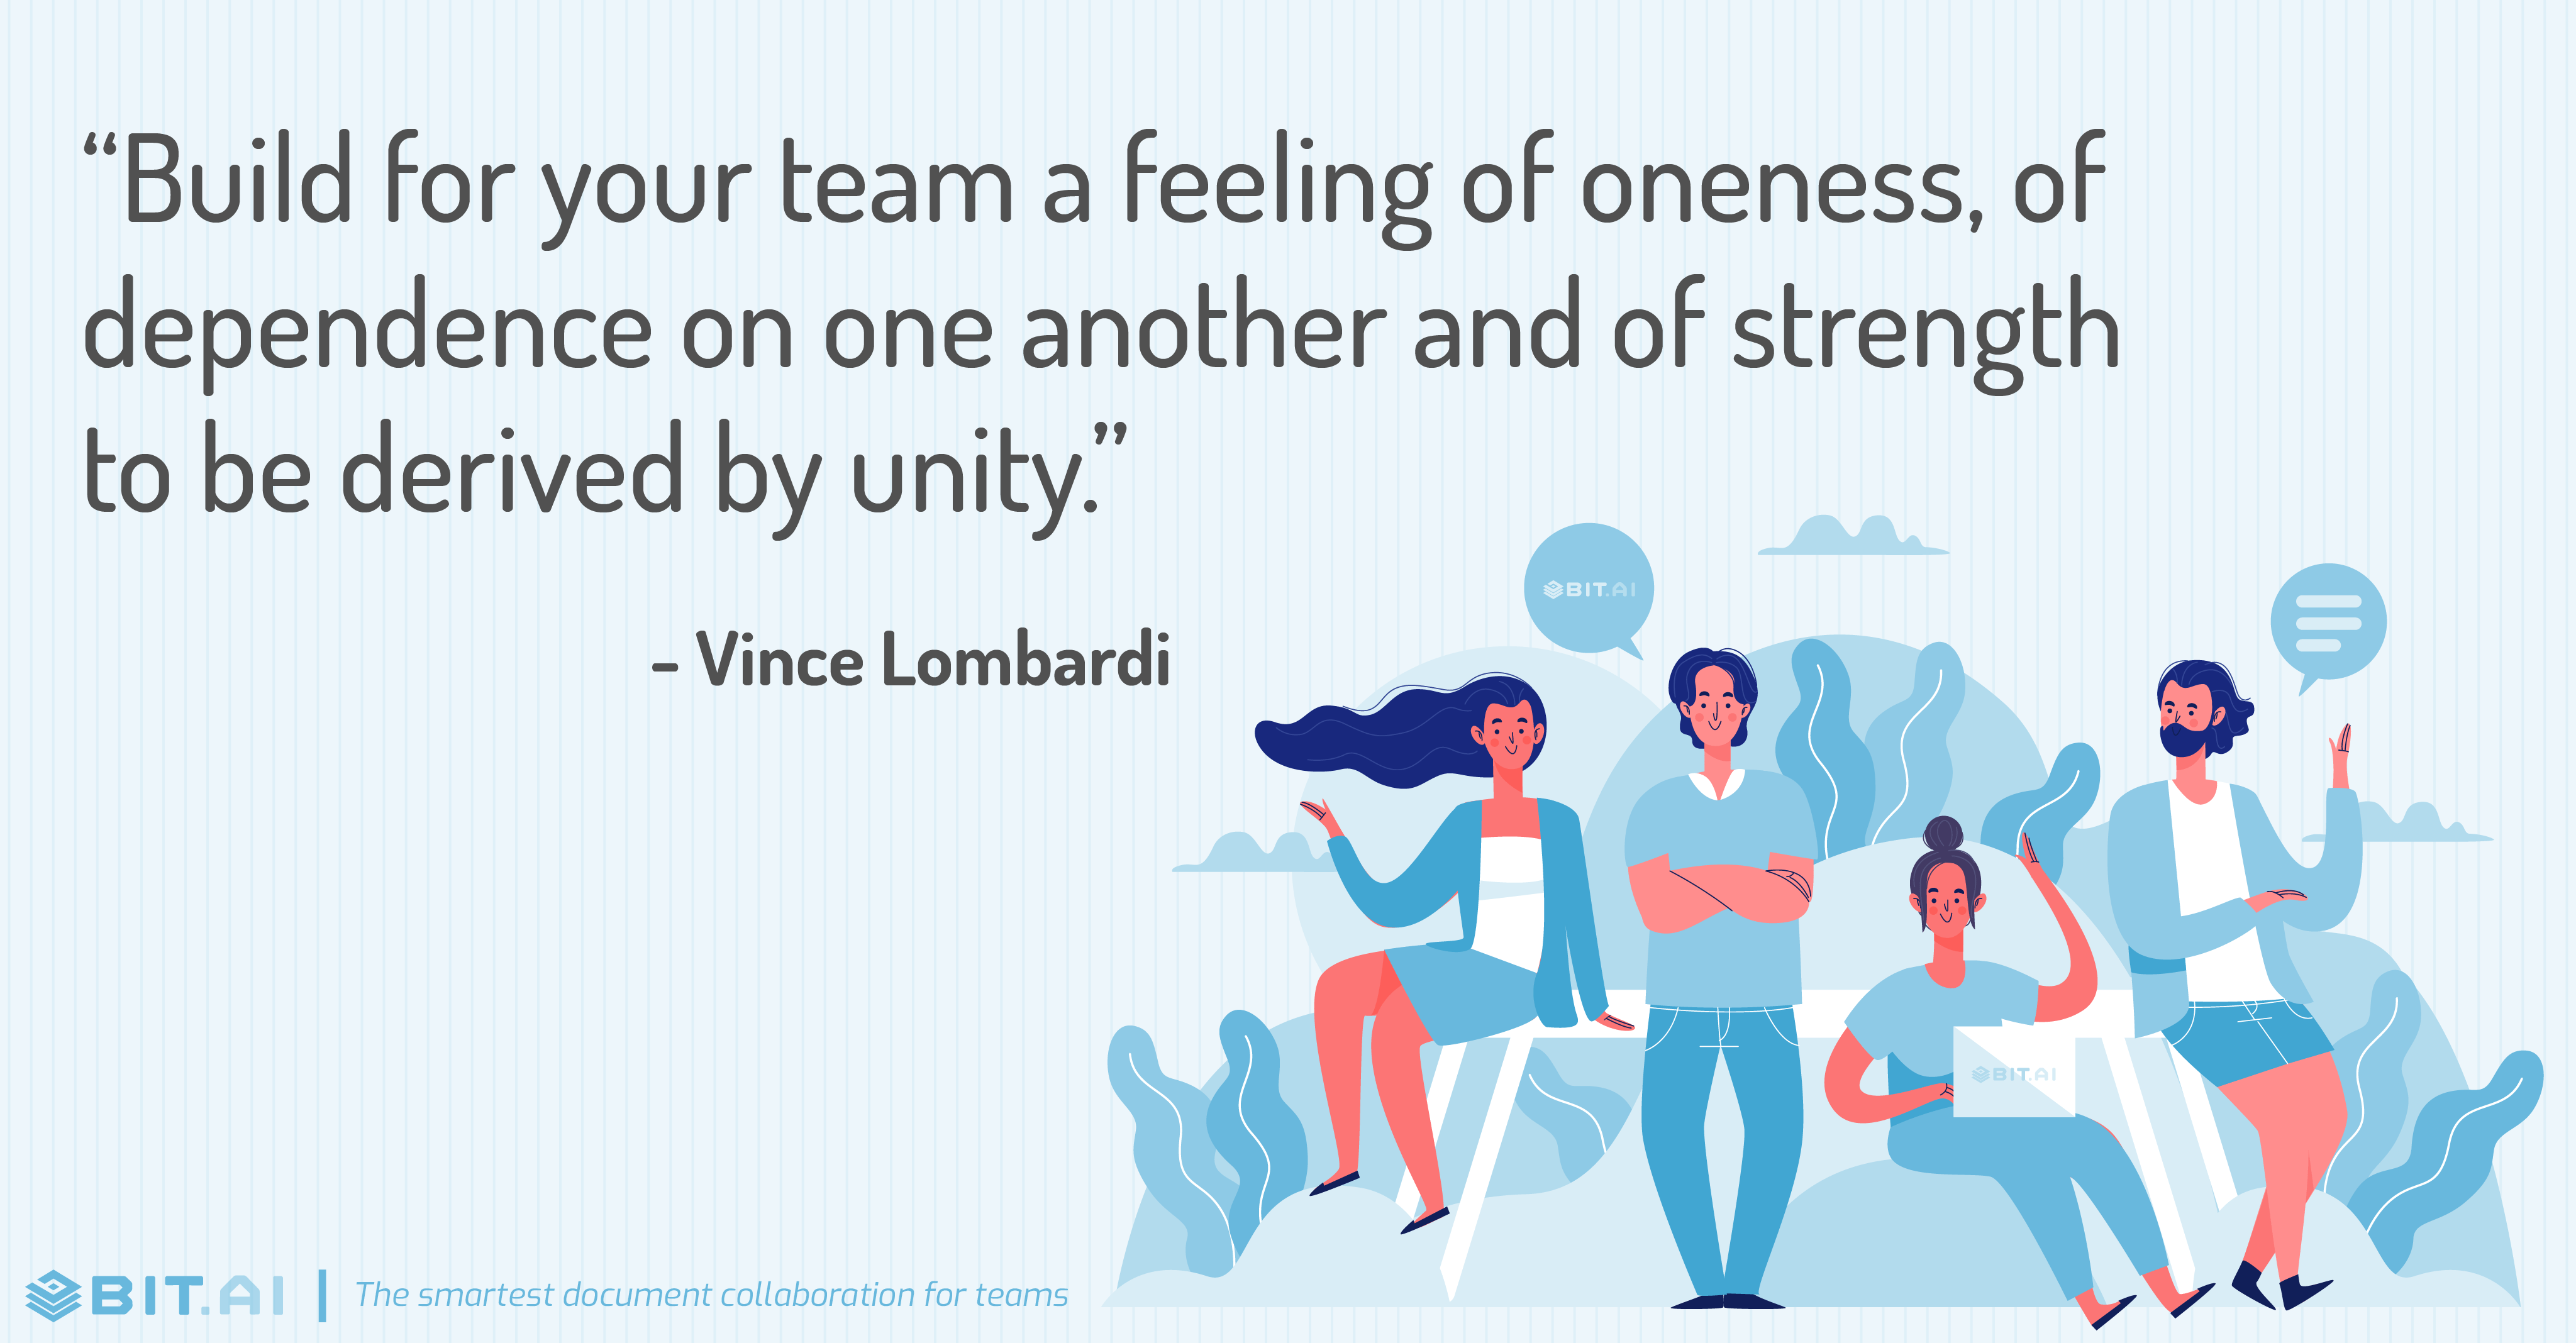 """Build for your team a feeling of oneness, of dependence on one another and of strength to be derived by unity."" - Vince Lombardi"